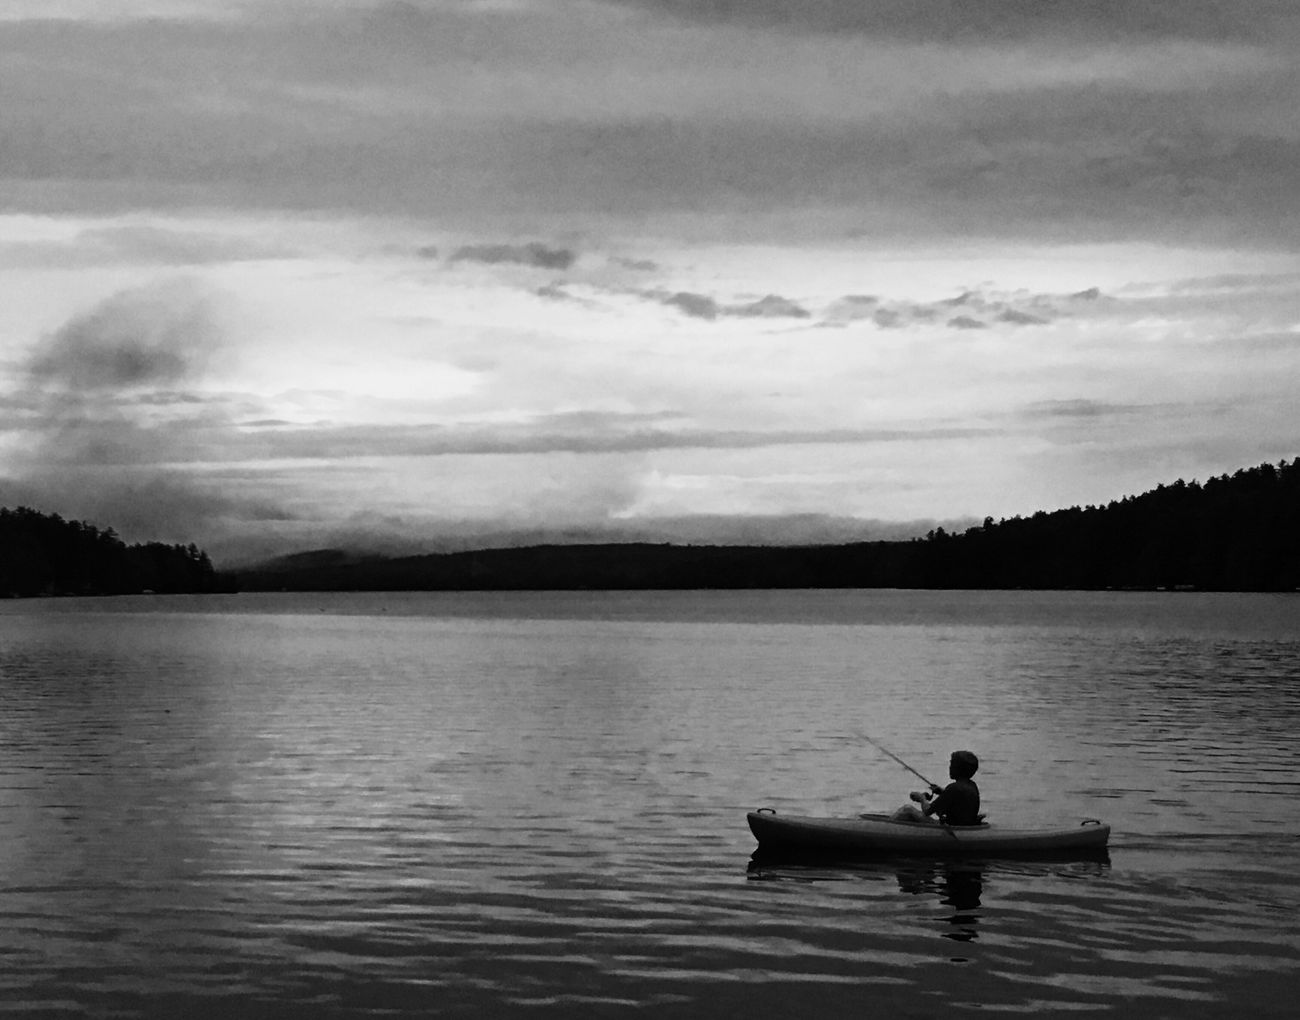 Peaceful evening on the lake in Denmark Maine Water Lake Nature Sitting One Person Sky Cloud - Sky Tranquility Blackandwhite Bnw Outdoors Real People Leisure Activity Tranquil Scene Scenics Men Day Mountain Raft Lifestyles Tree Maine